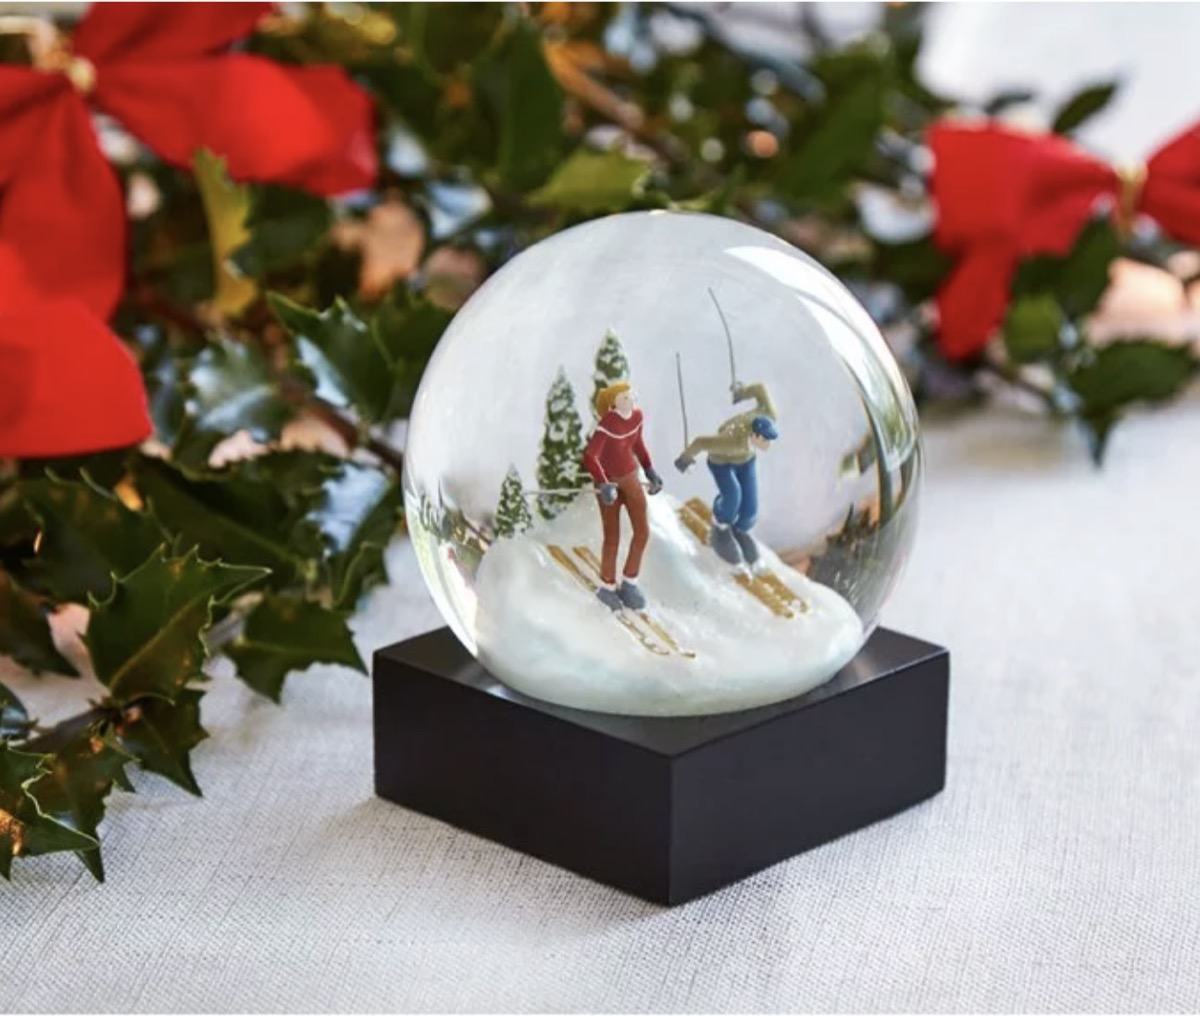 modern snow globe with skiing figures inside